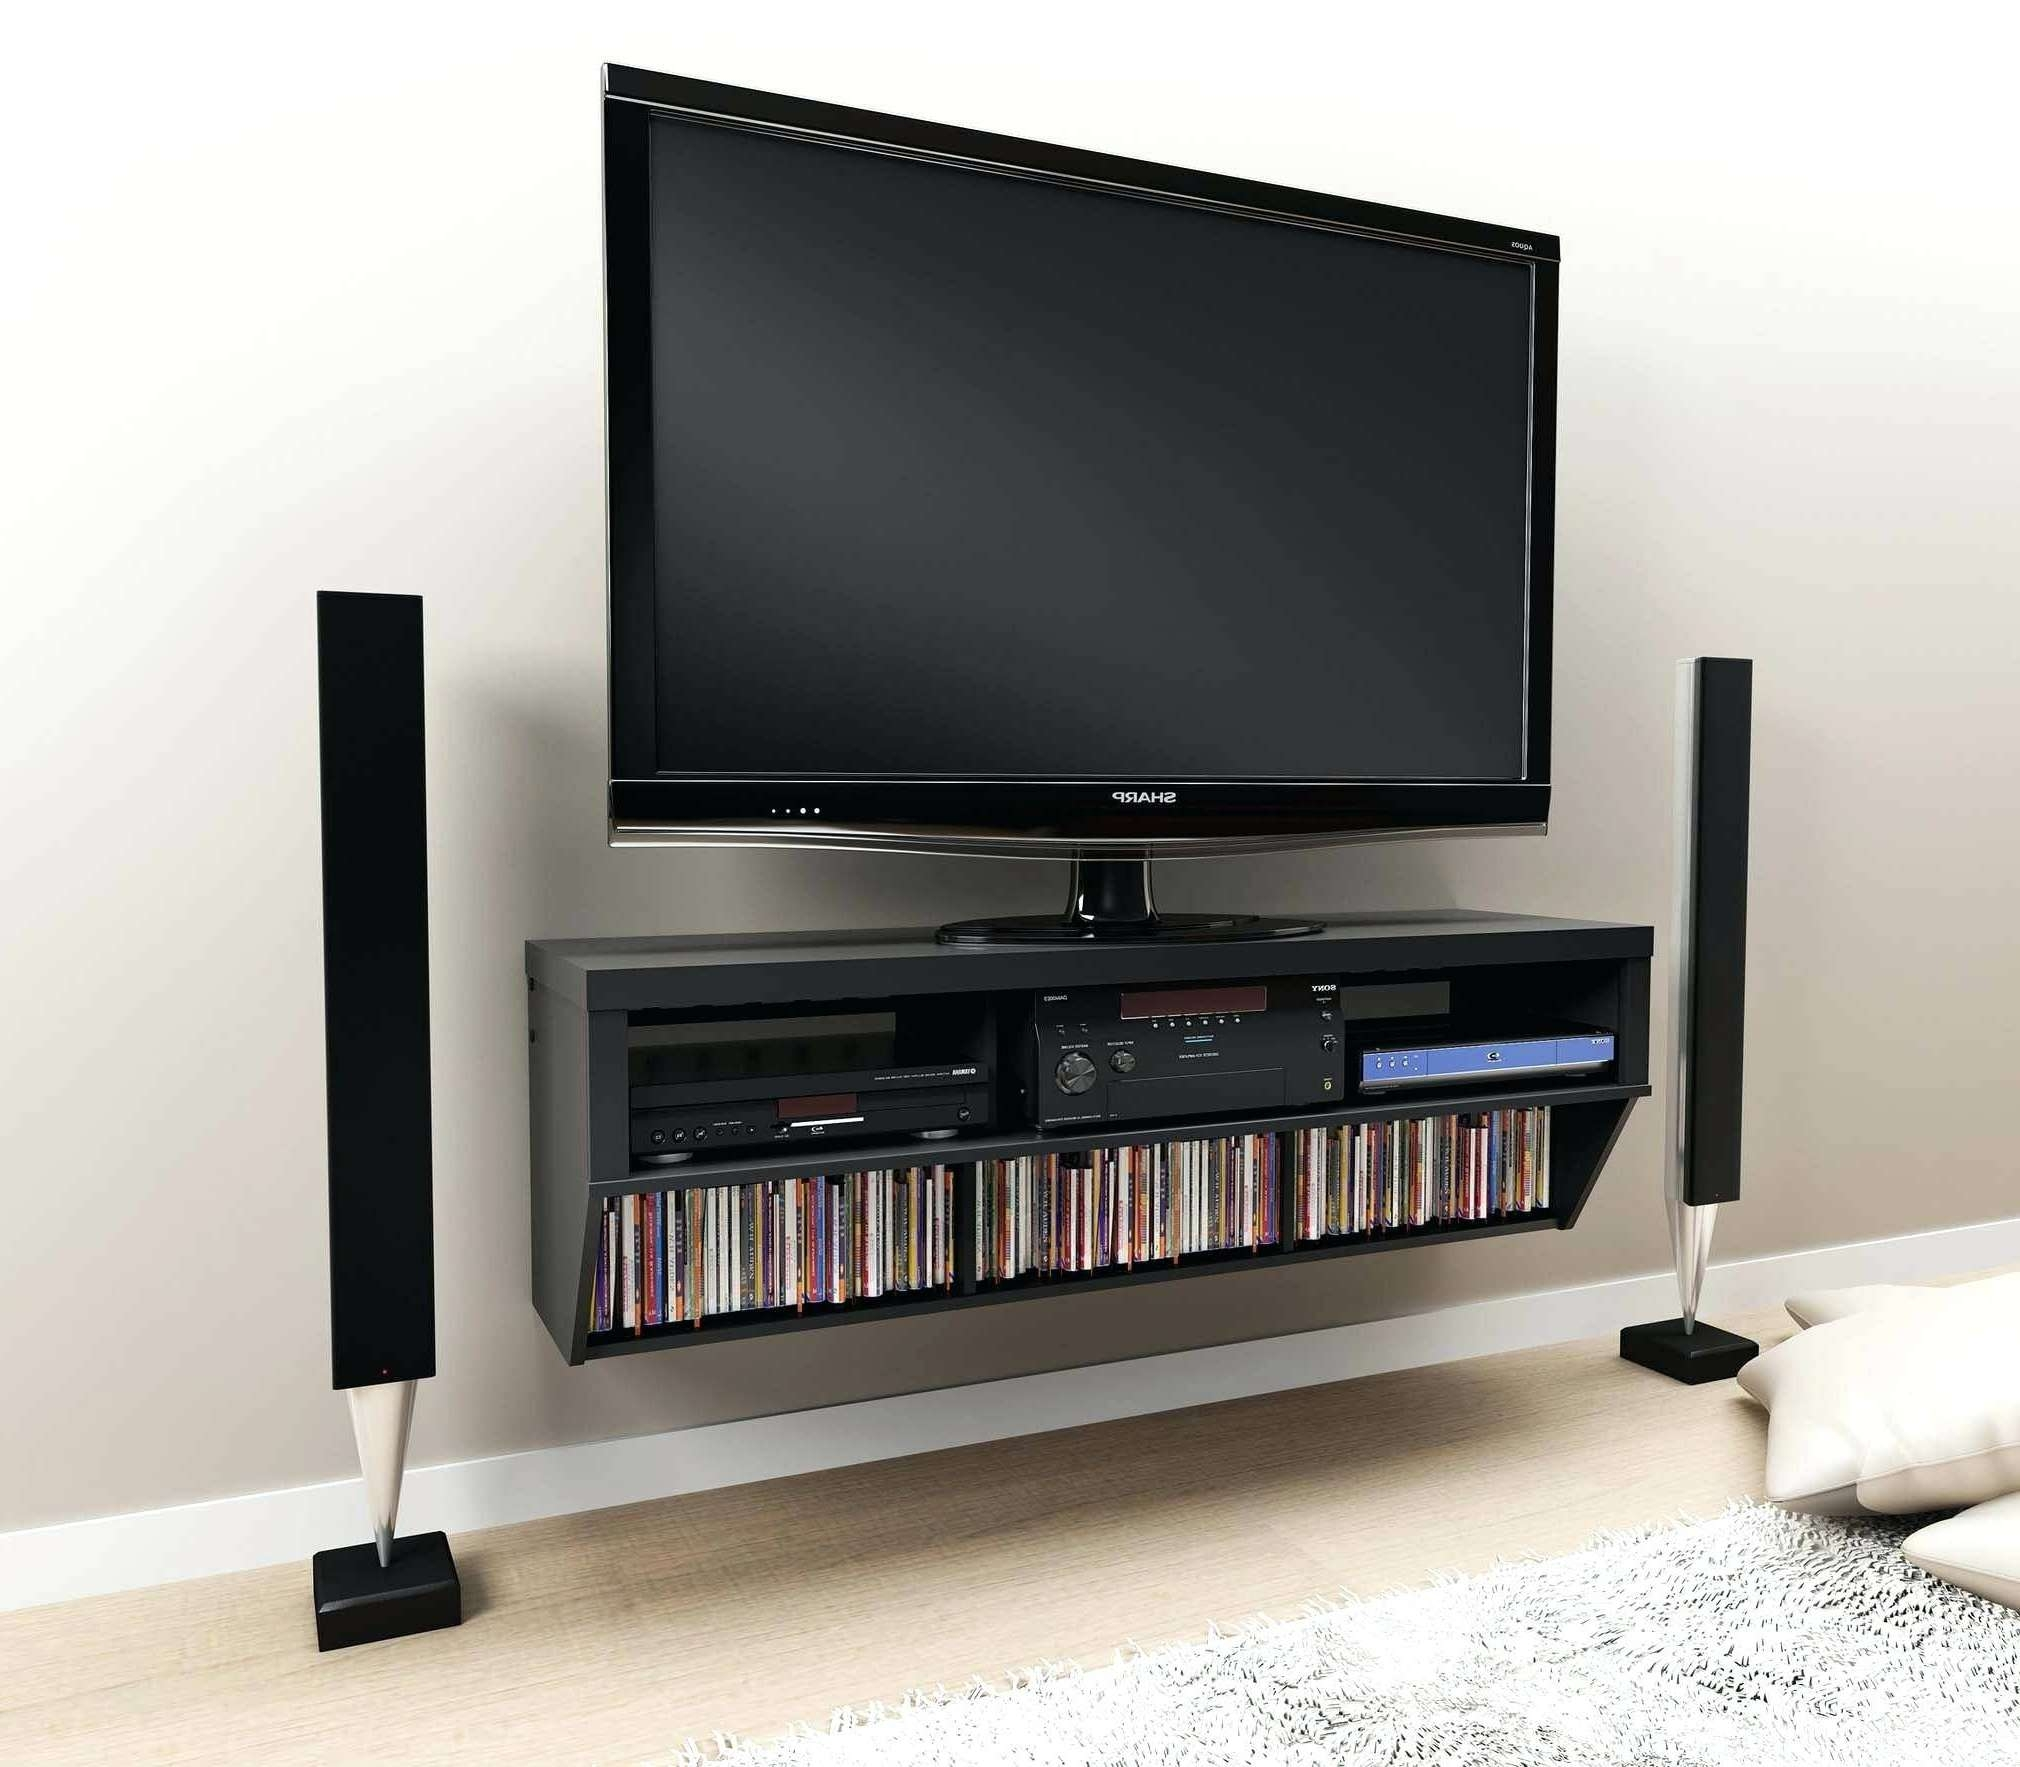 Surprising Unusual Tv Stands 44 Modern Tv Stand Designs For Inside Unusual Tv Stands (View 4 of 15)